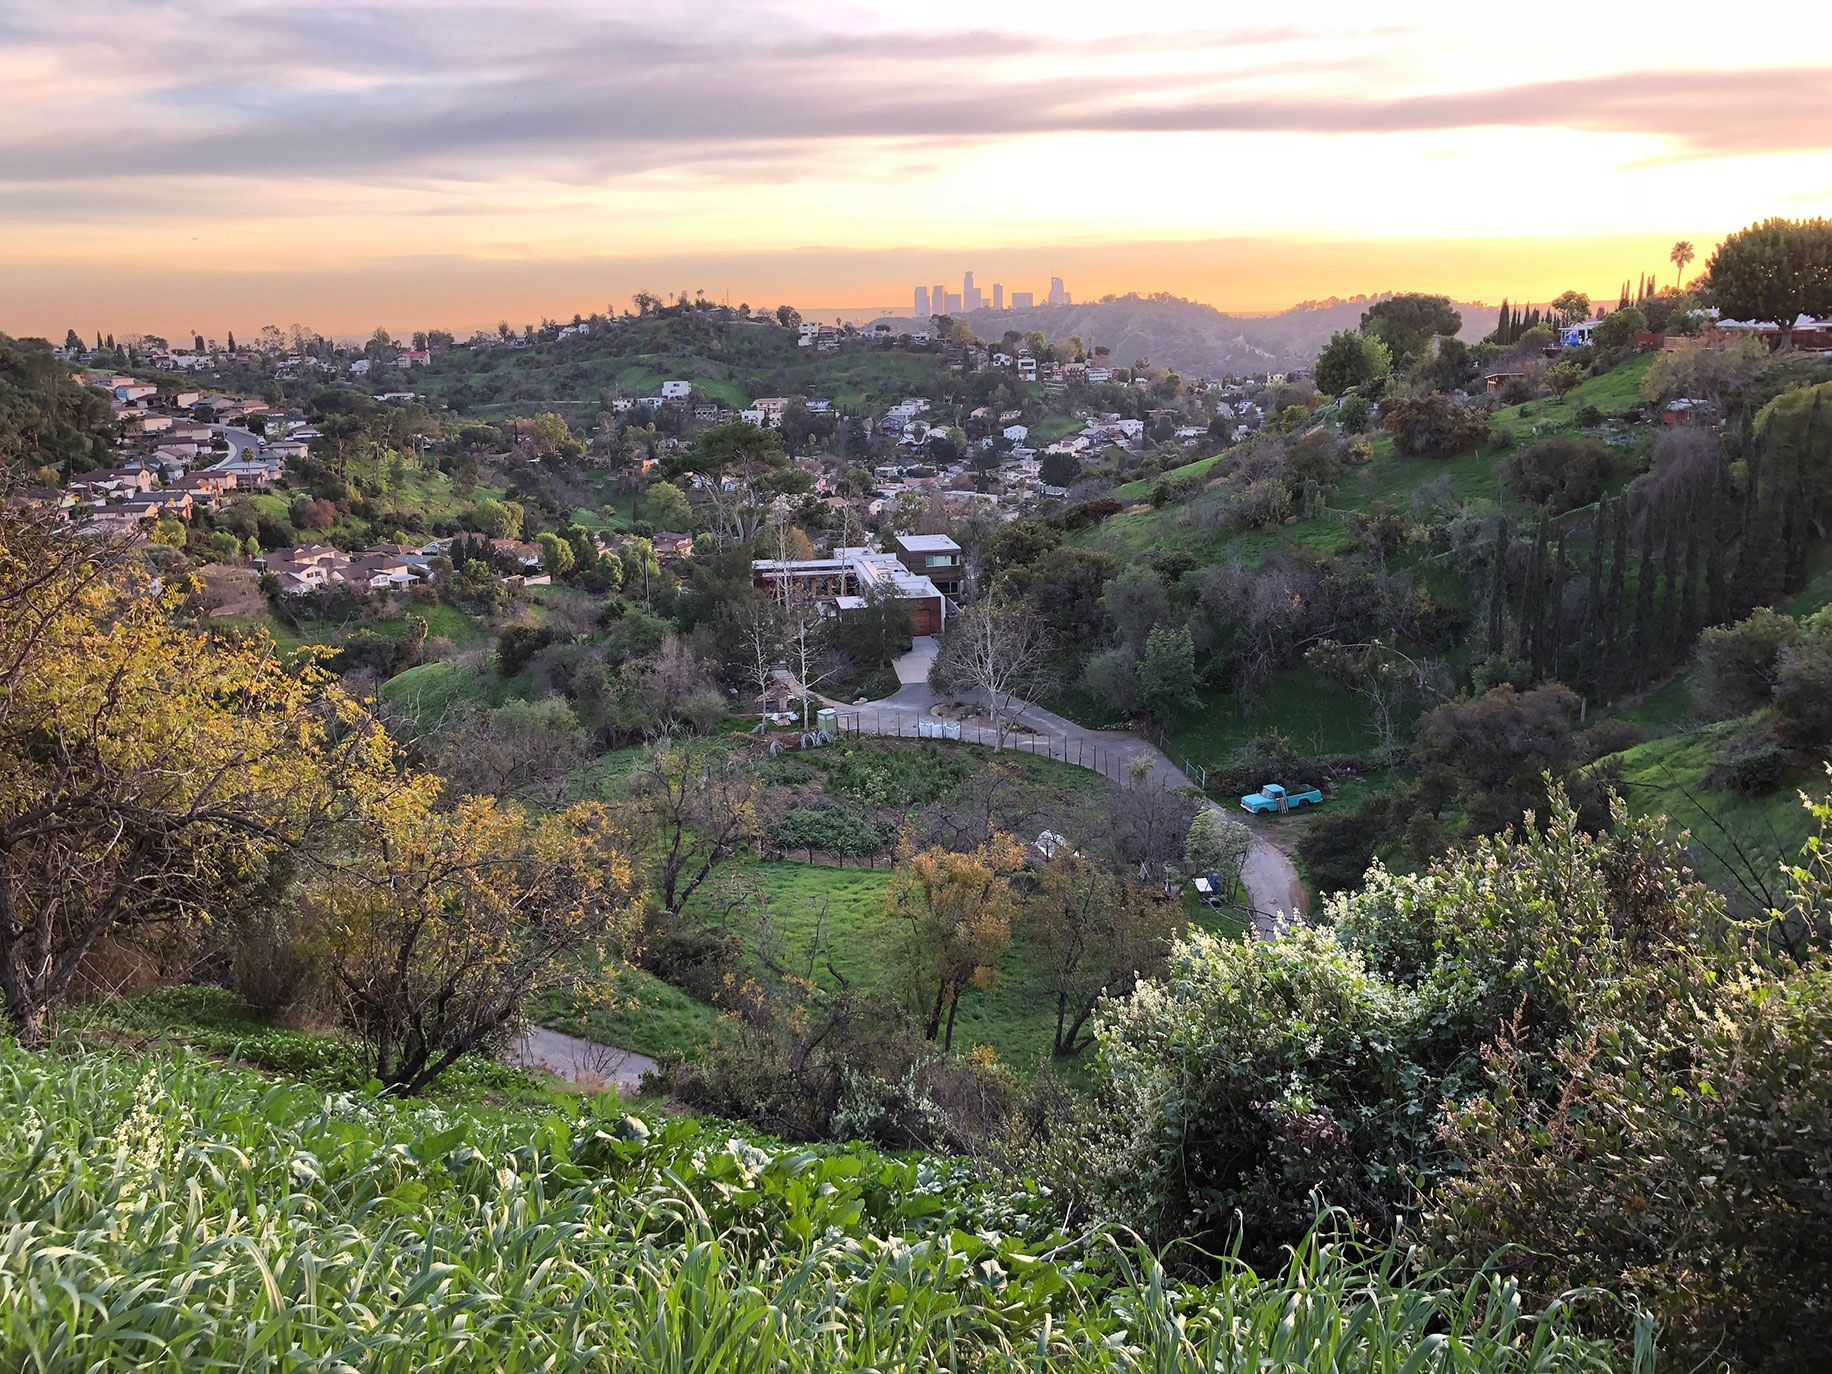 A photo of Angeles skyline and the author's farm (just to the left of blue truck) from a hilltop in Glassell Park.